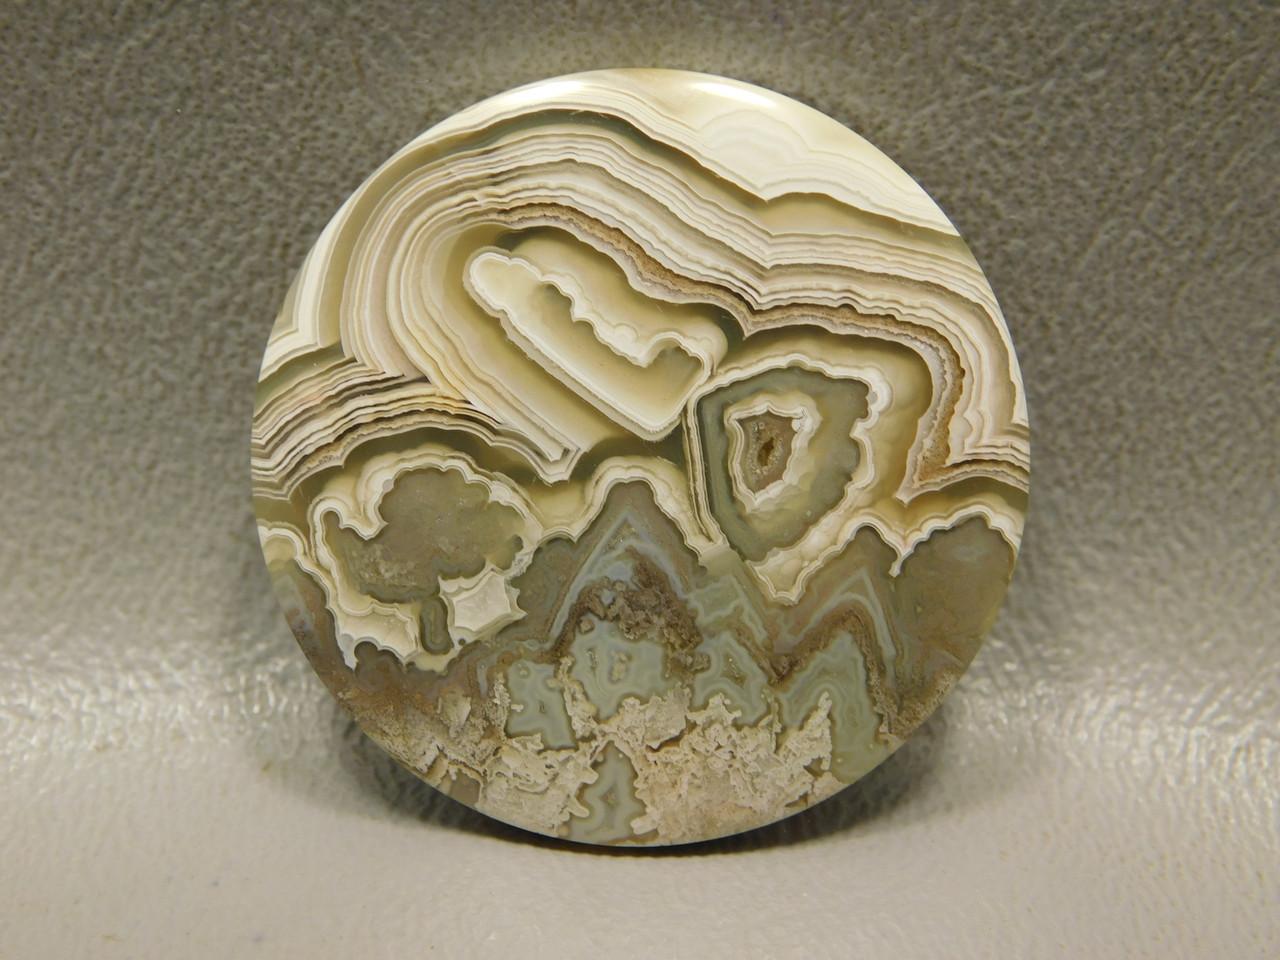 Crazy Lace Agate 34 mm Round Gemstone Cabochon #11